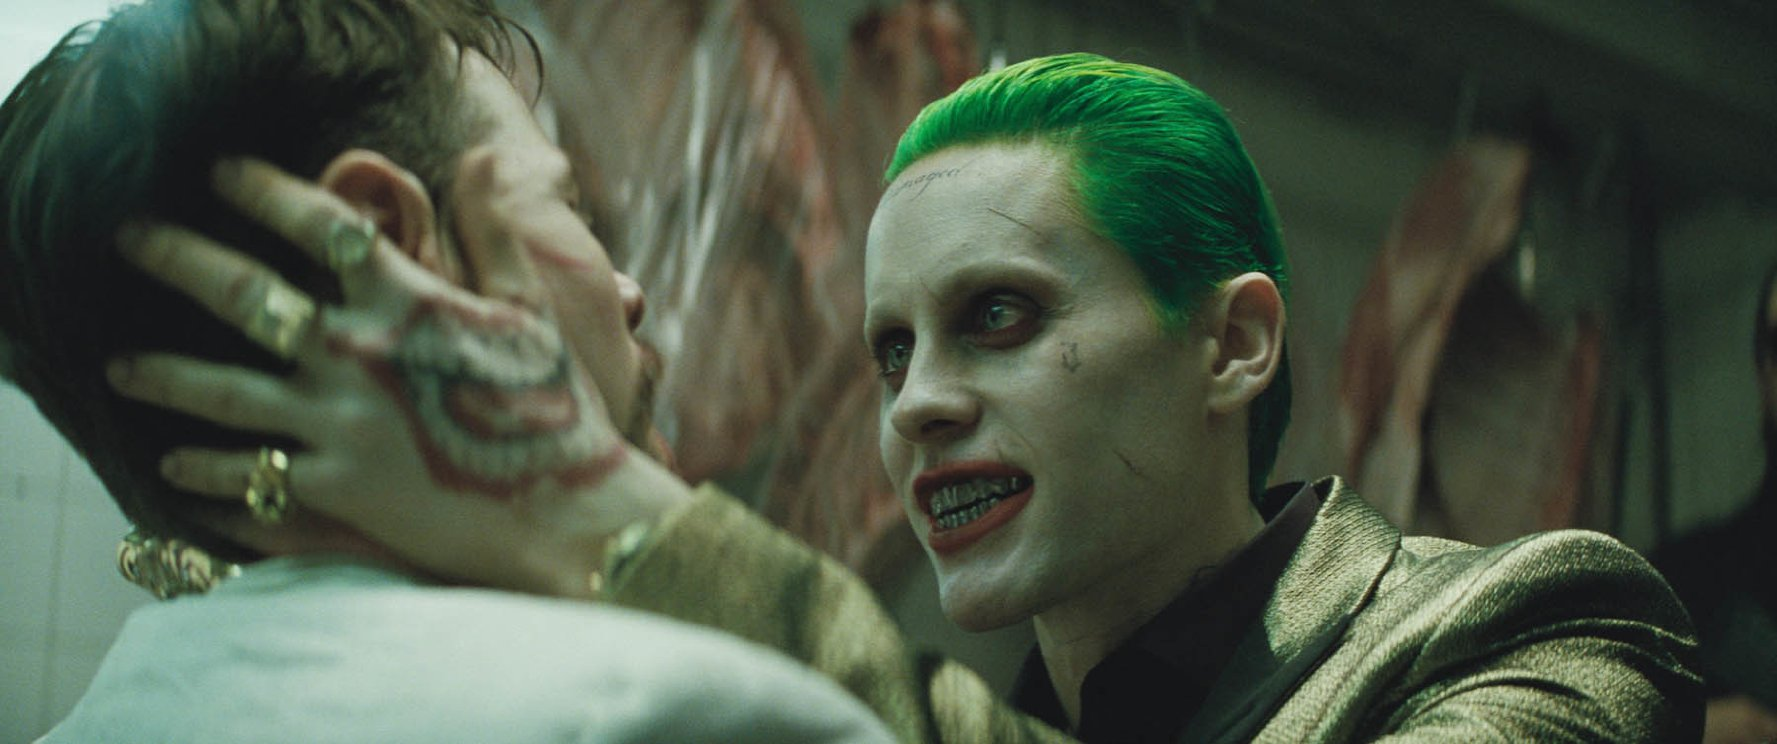 Courtesy of Warner Bros. - Suicide Squad The Joker